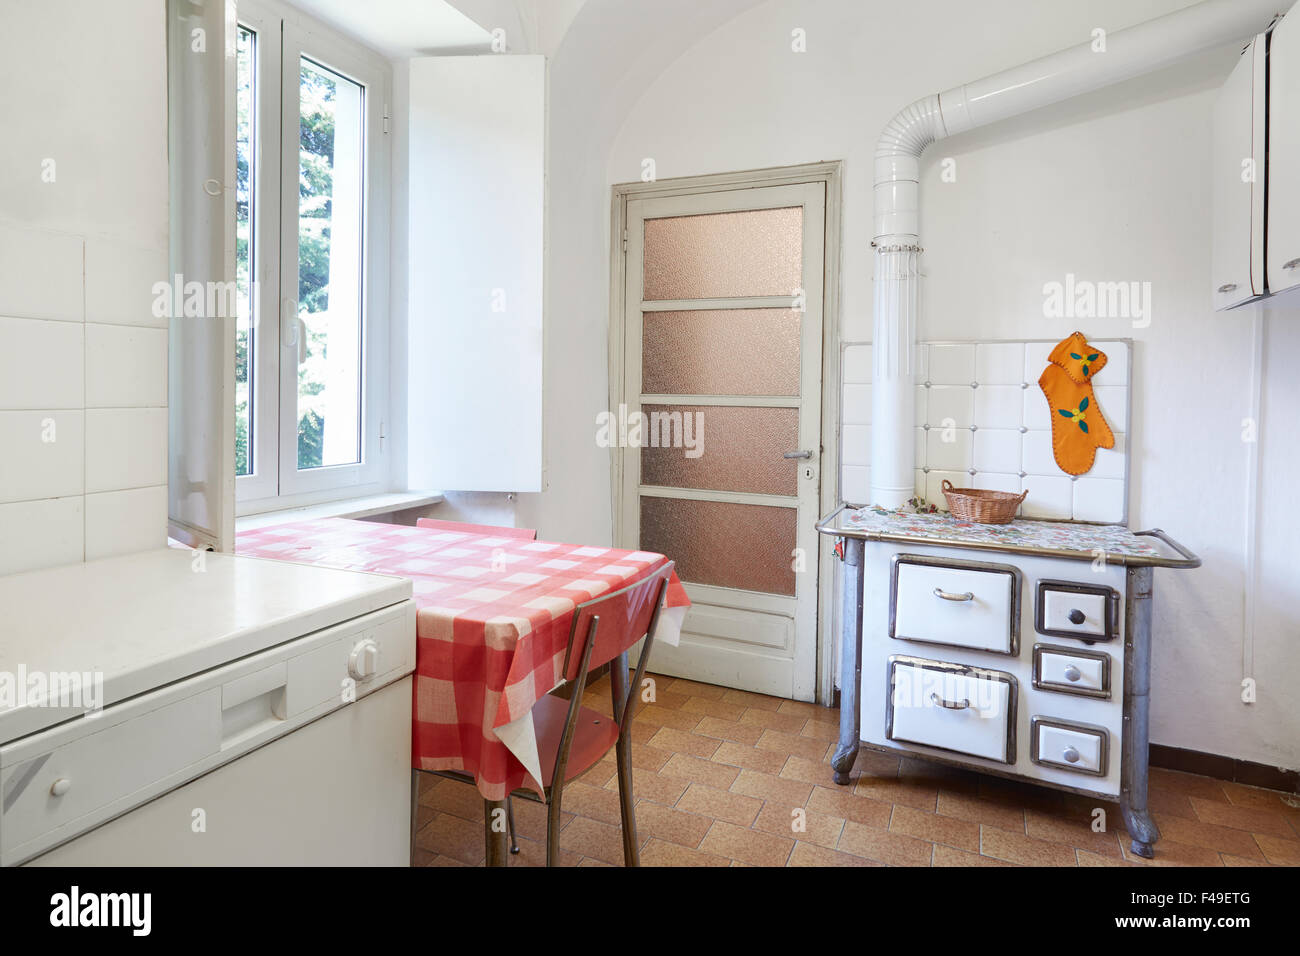 Old kitchen with stove in normal interior - Stock Image